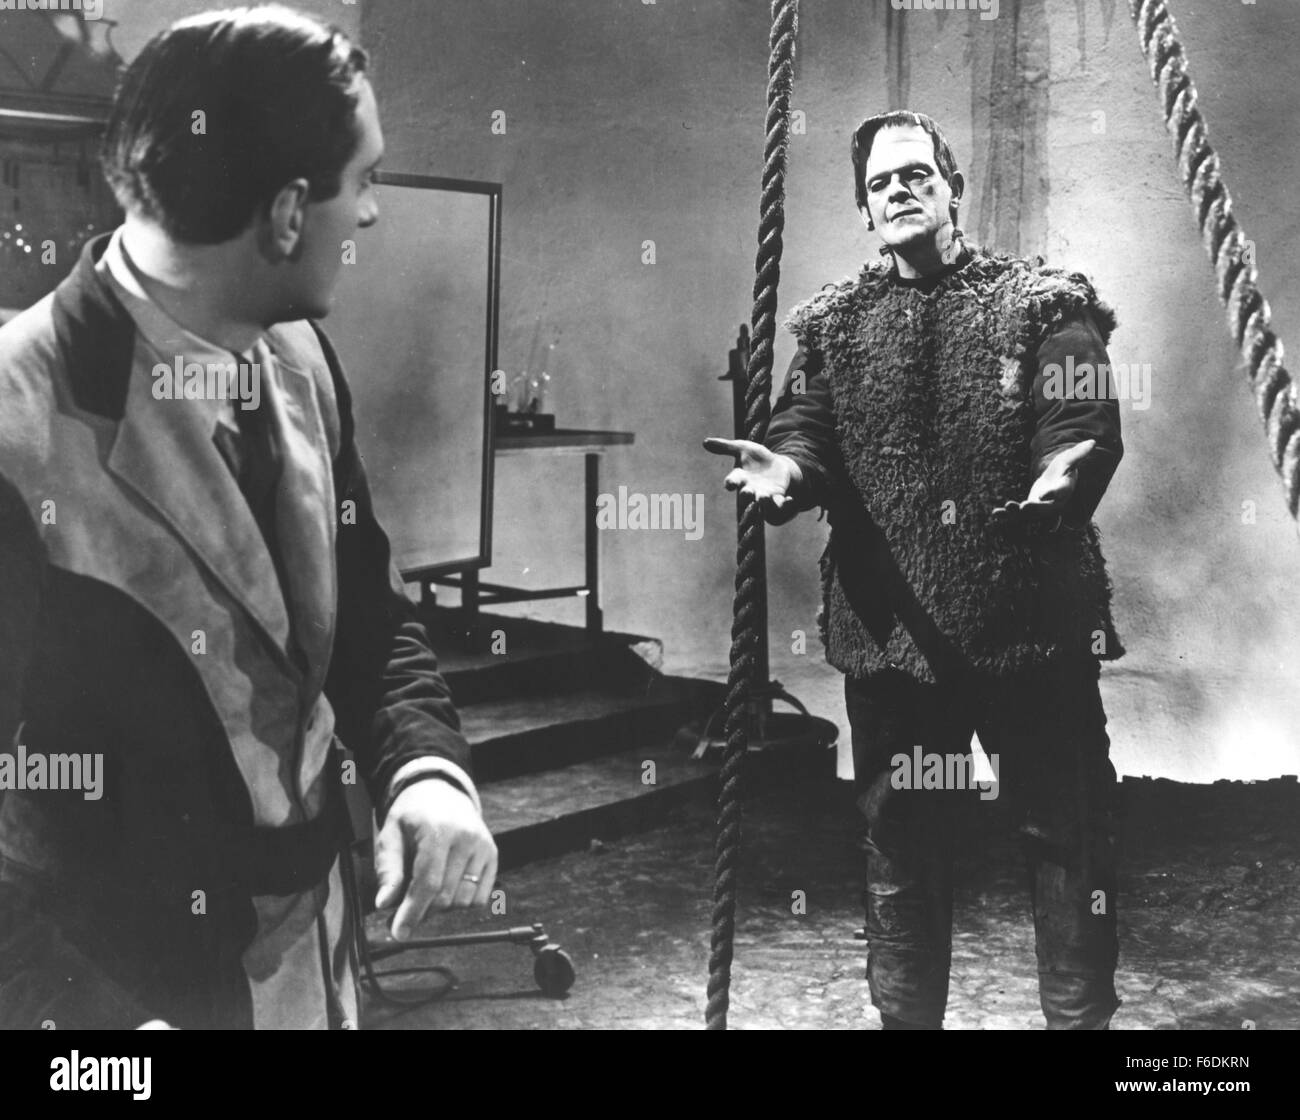 frankenstein and macbeth comparasion If you want to compare shakespeare's macbeth with mary shelley's frankenstein, it's better to look though our article it will help you prepare a good paper.